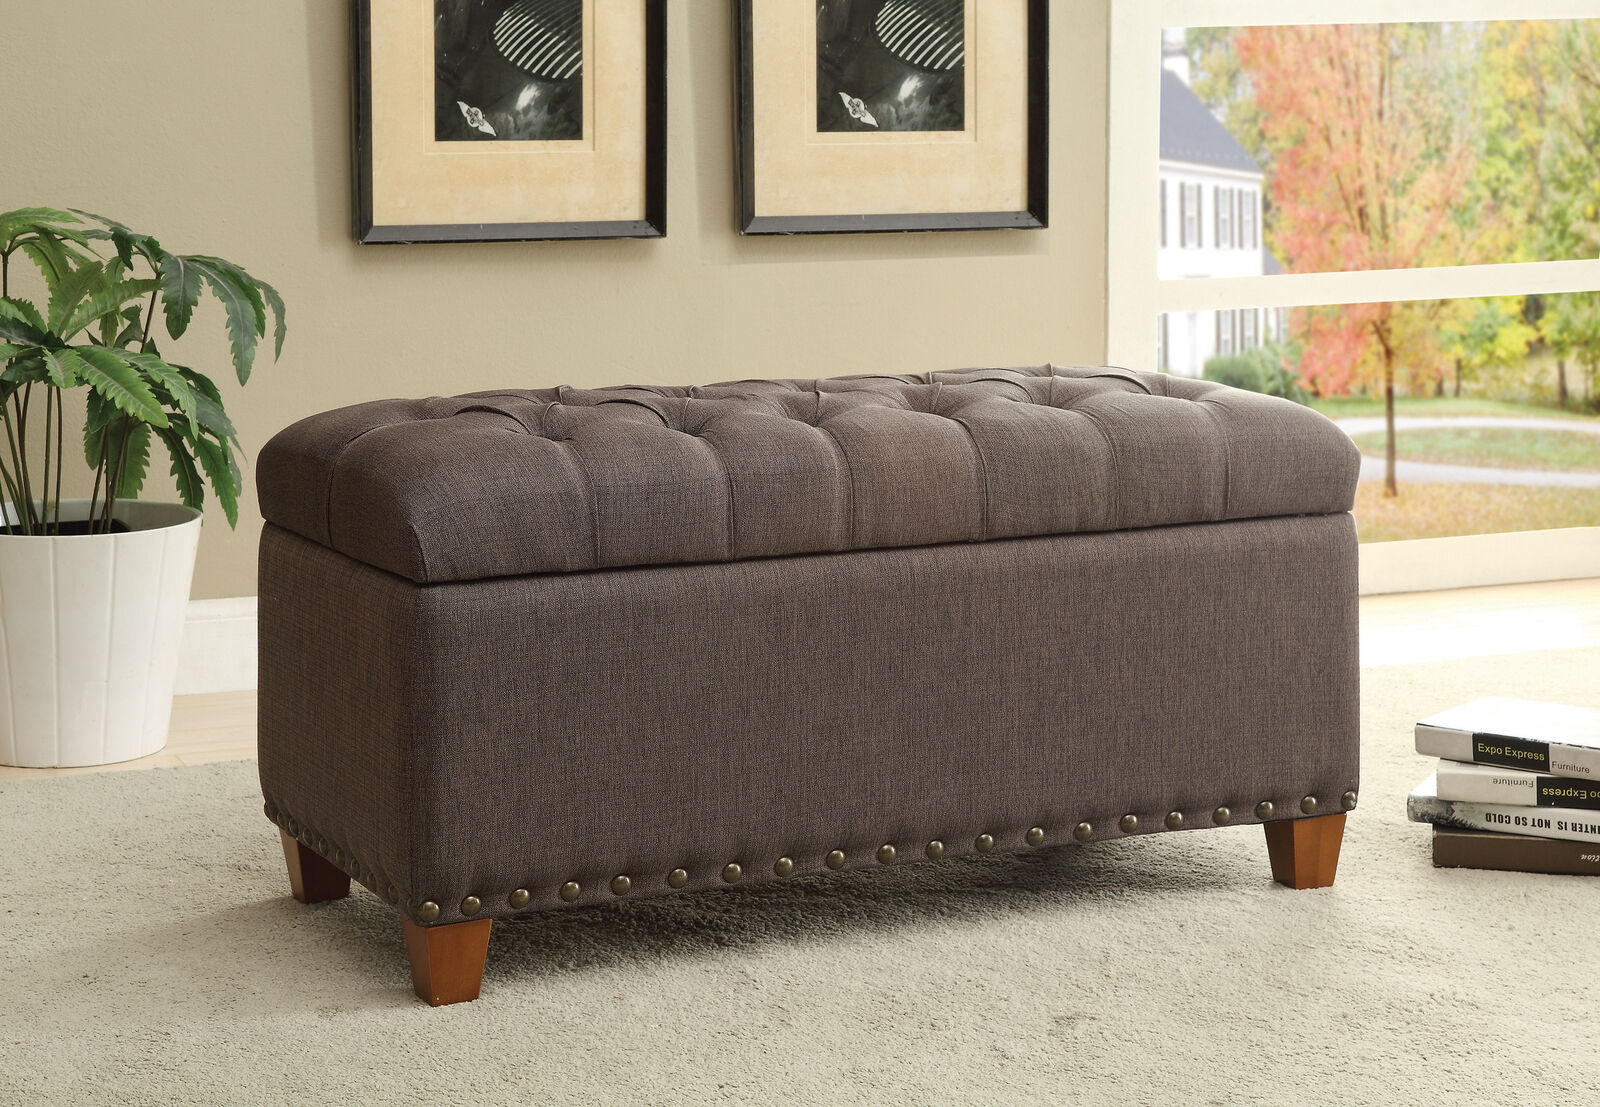 Tufted Storage Bench Ottoman in Taupe Fabric by Coaster 5000